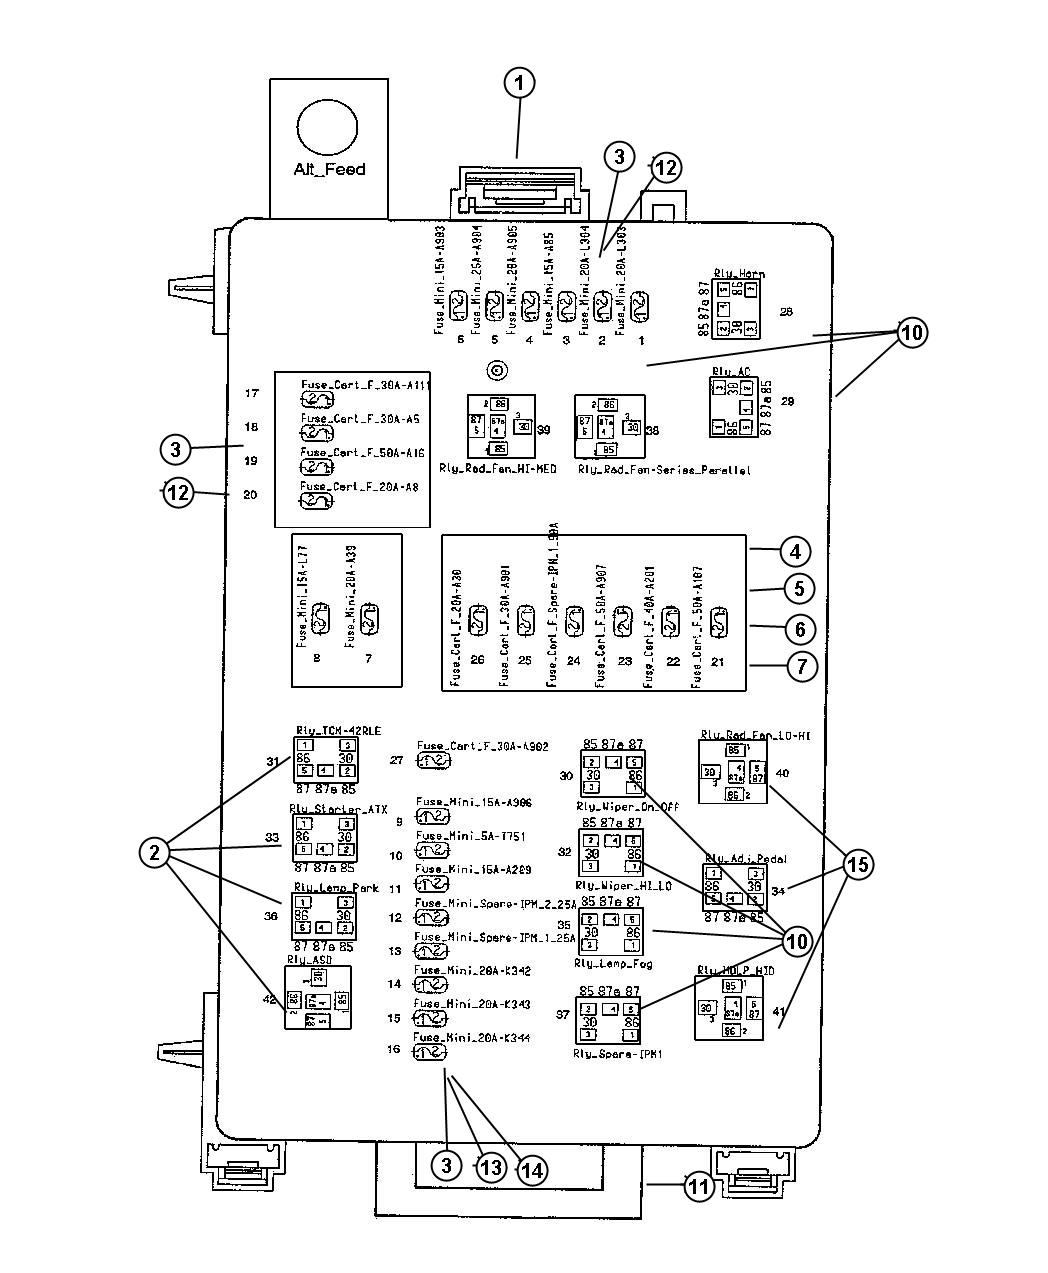 hight resolution of 06 charger fuse box diagram wiring diagram article 2006 dodge charger rear fuse box diagram 2006 charger fuse box